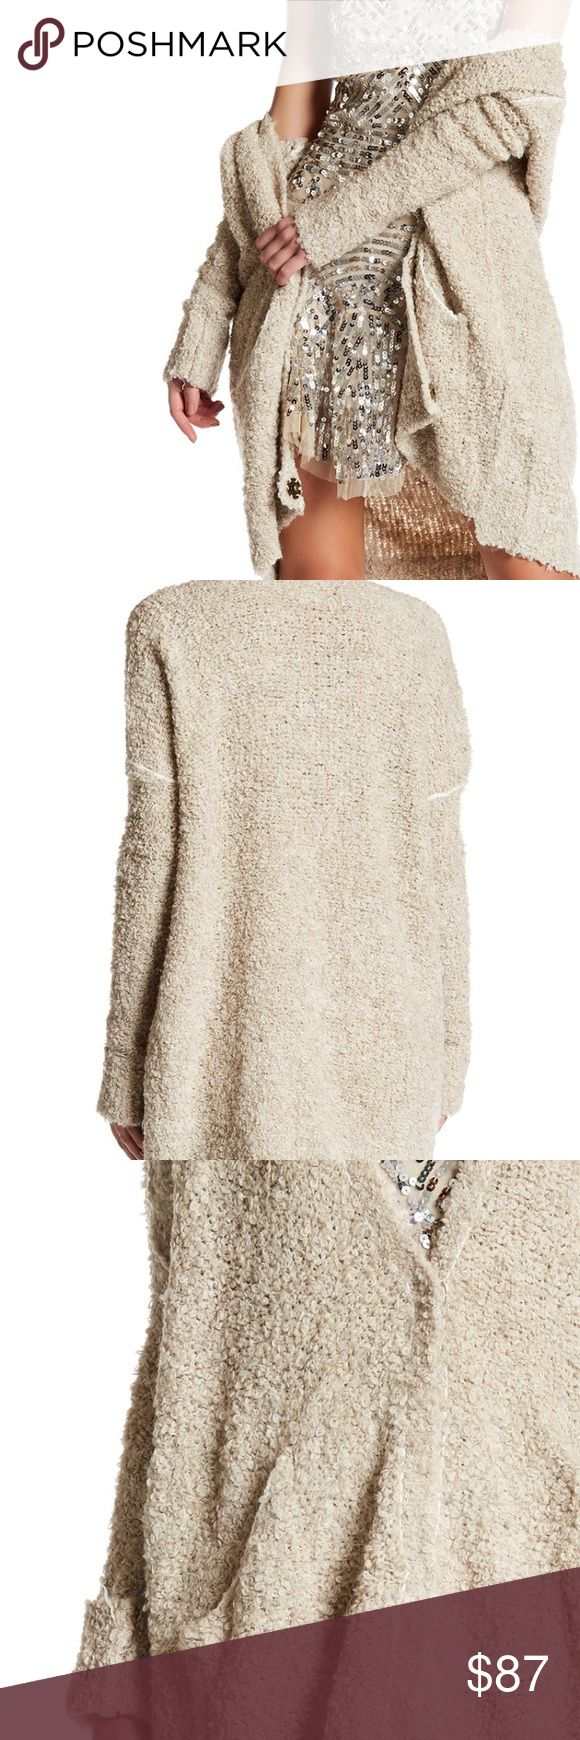 💗NWT Free People Long Knit Cardigan Super soft and cozy! Free People Sweaters Cardigans